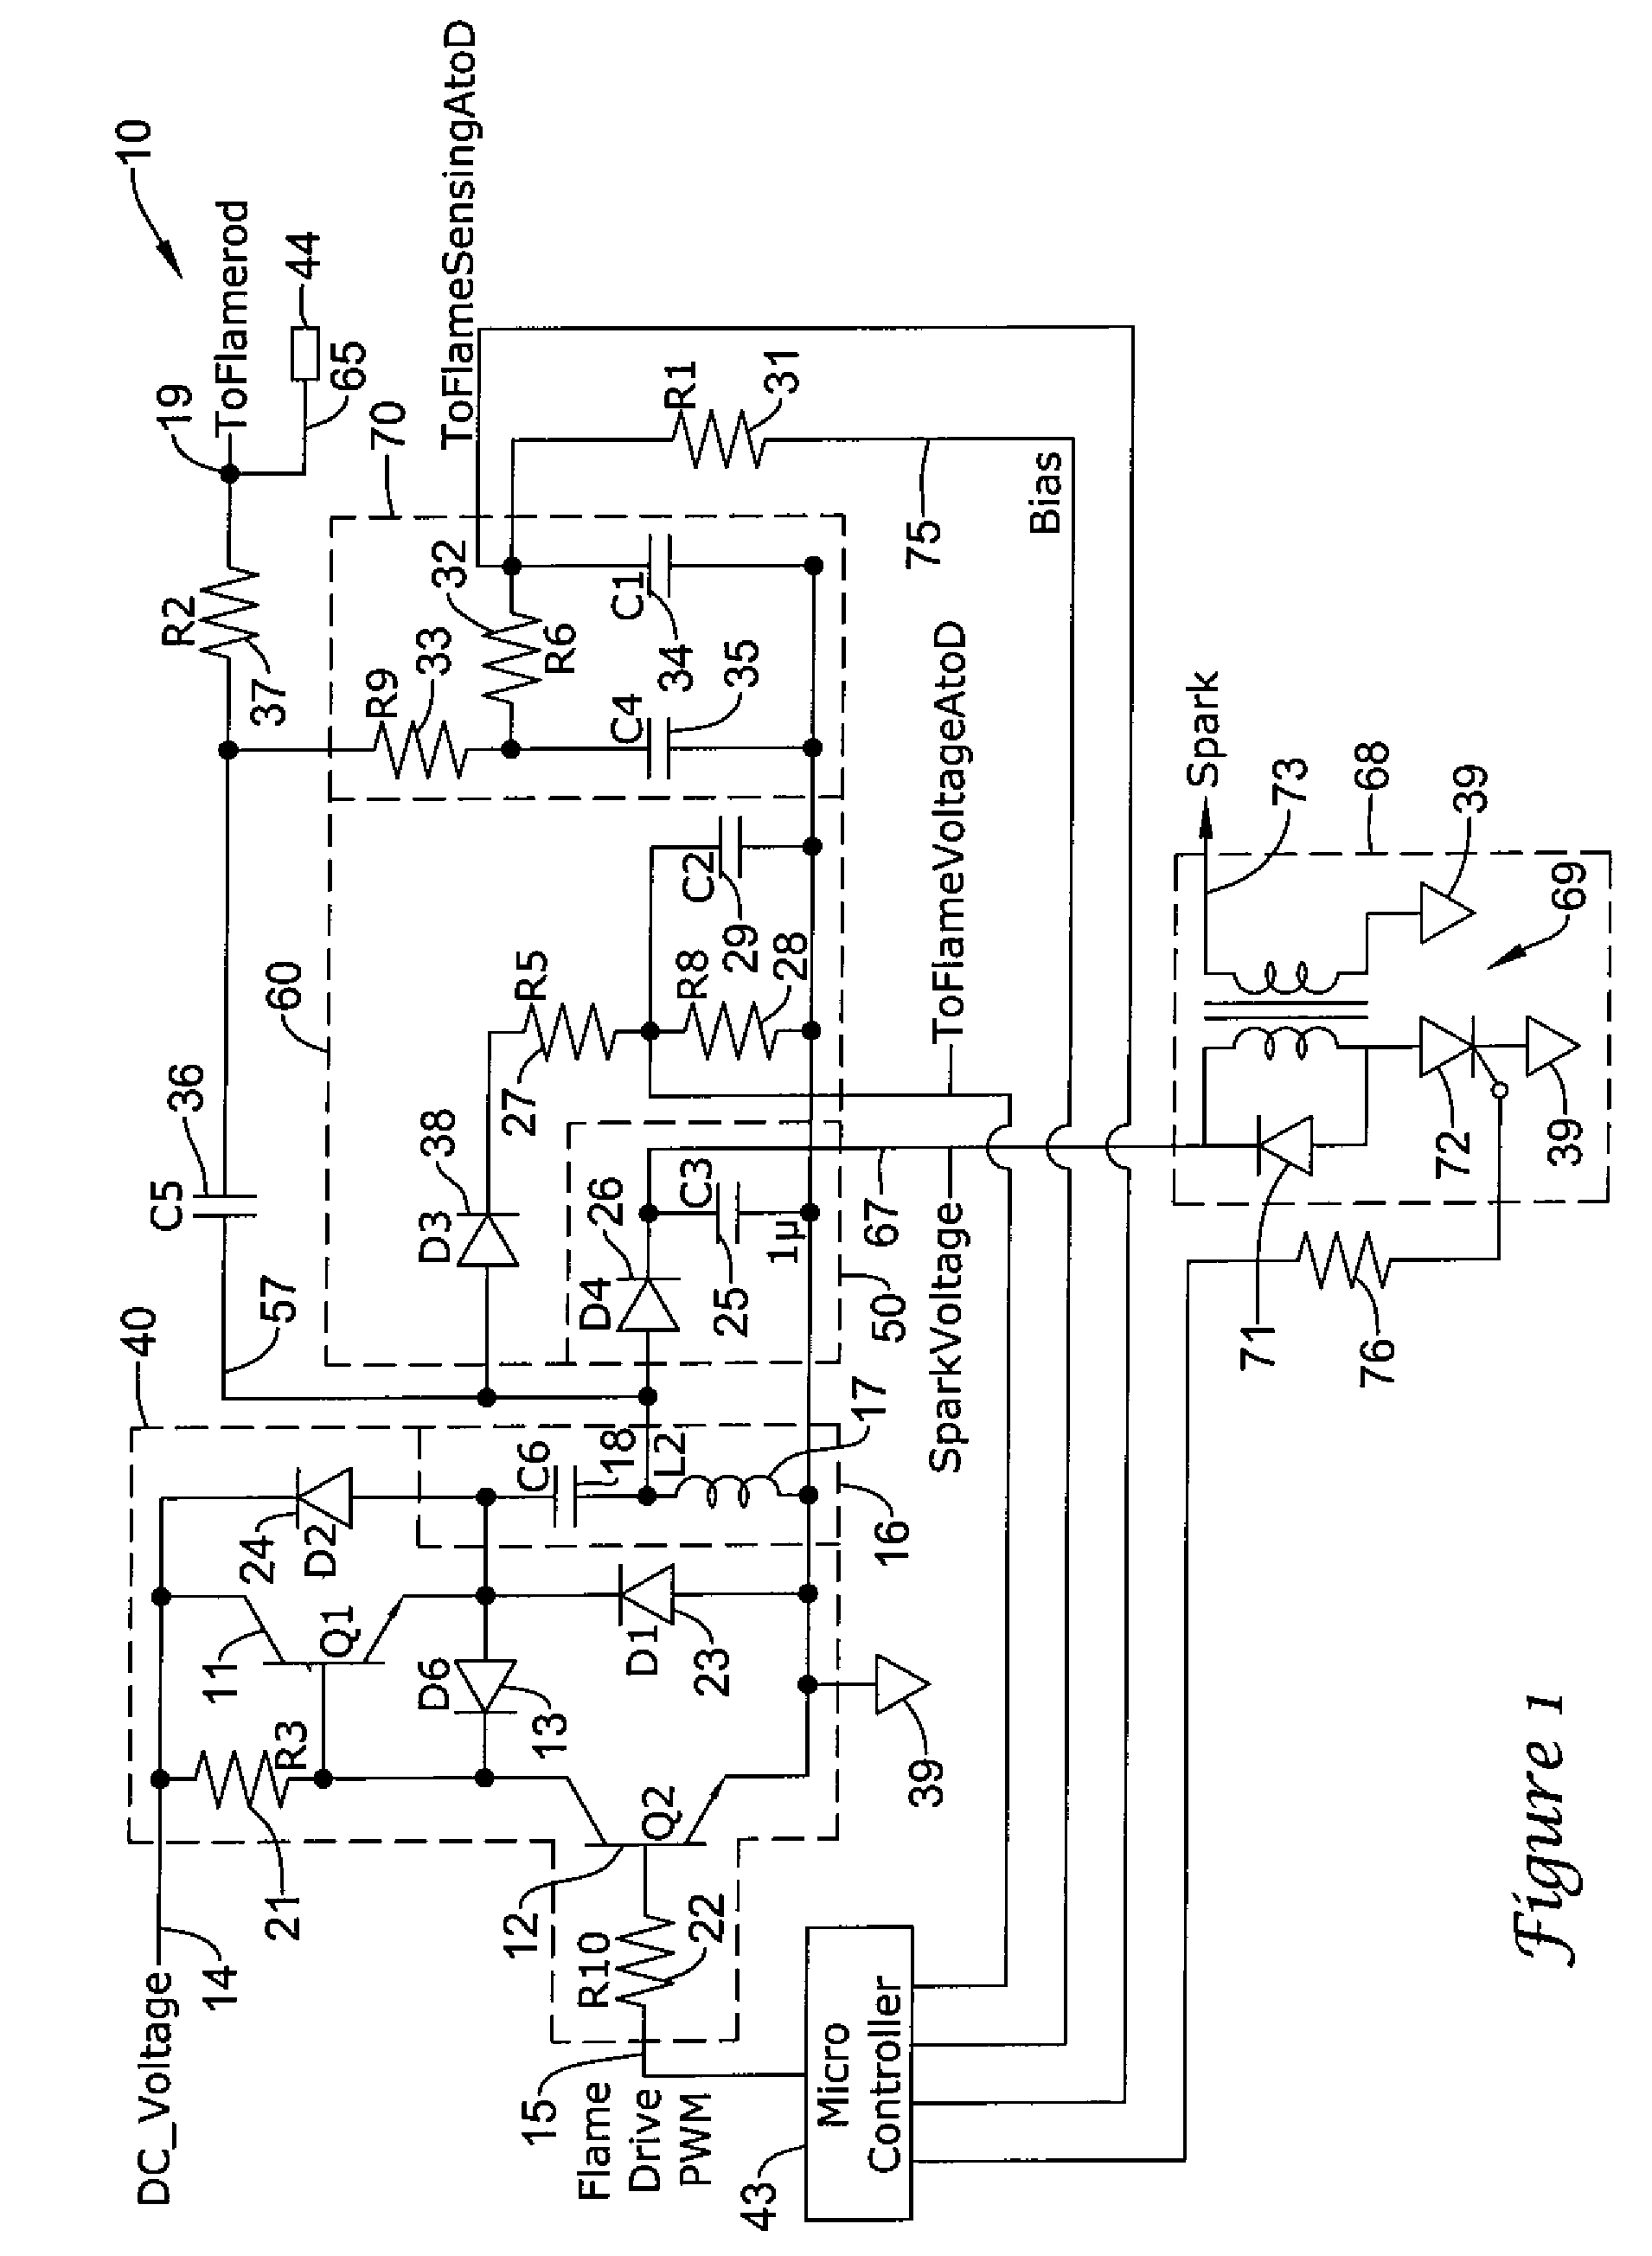 Flame Sensor Wiring Diagram 27 Images 5r55e Us08310801 20121113 D00001 Patent Us8310801 Sensing Voltage Dependent On Application At